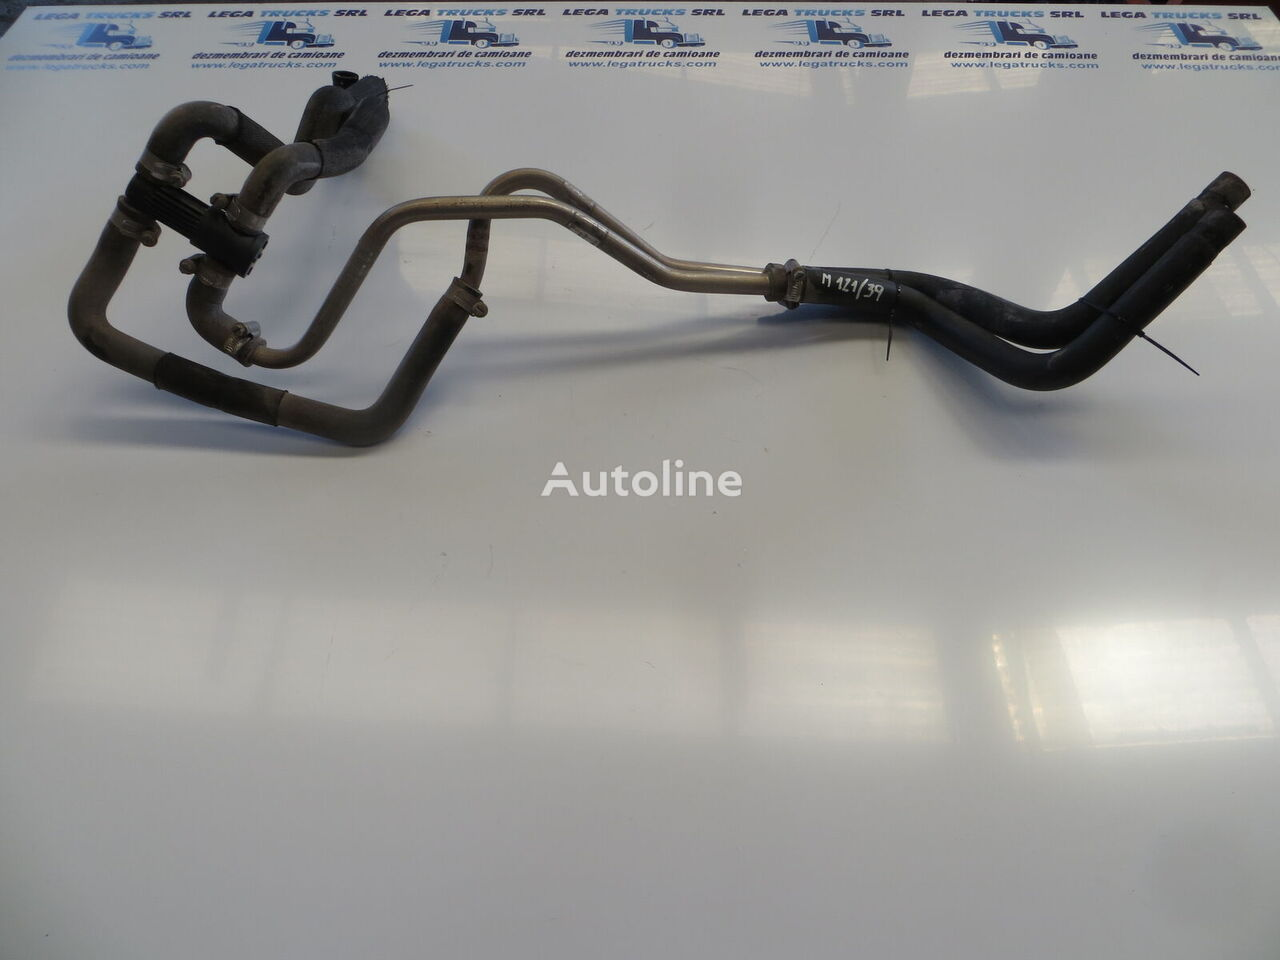 FURTUN INCALZIRE COMPLET MAN TGX 440 EURO4 2010 MAN other engine spare part for MAN TGX tractor unit